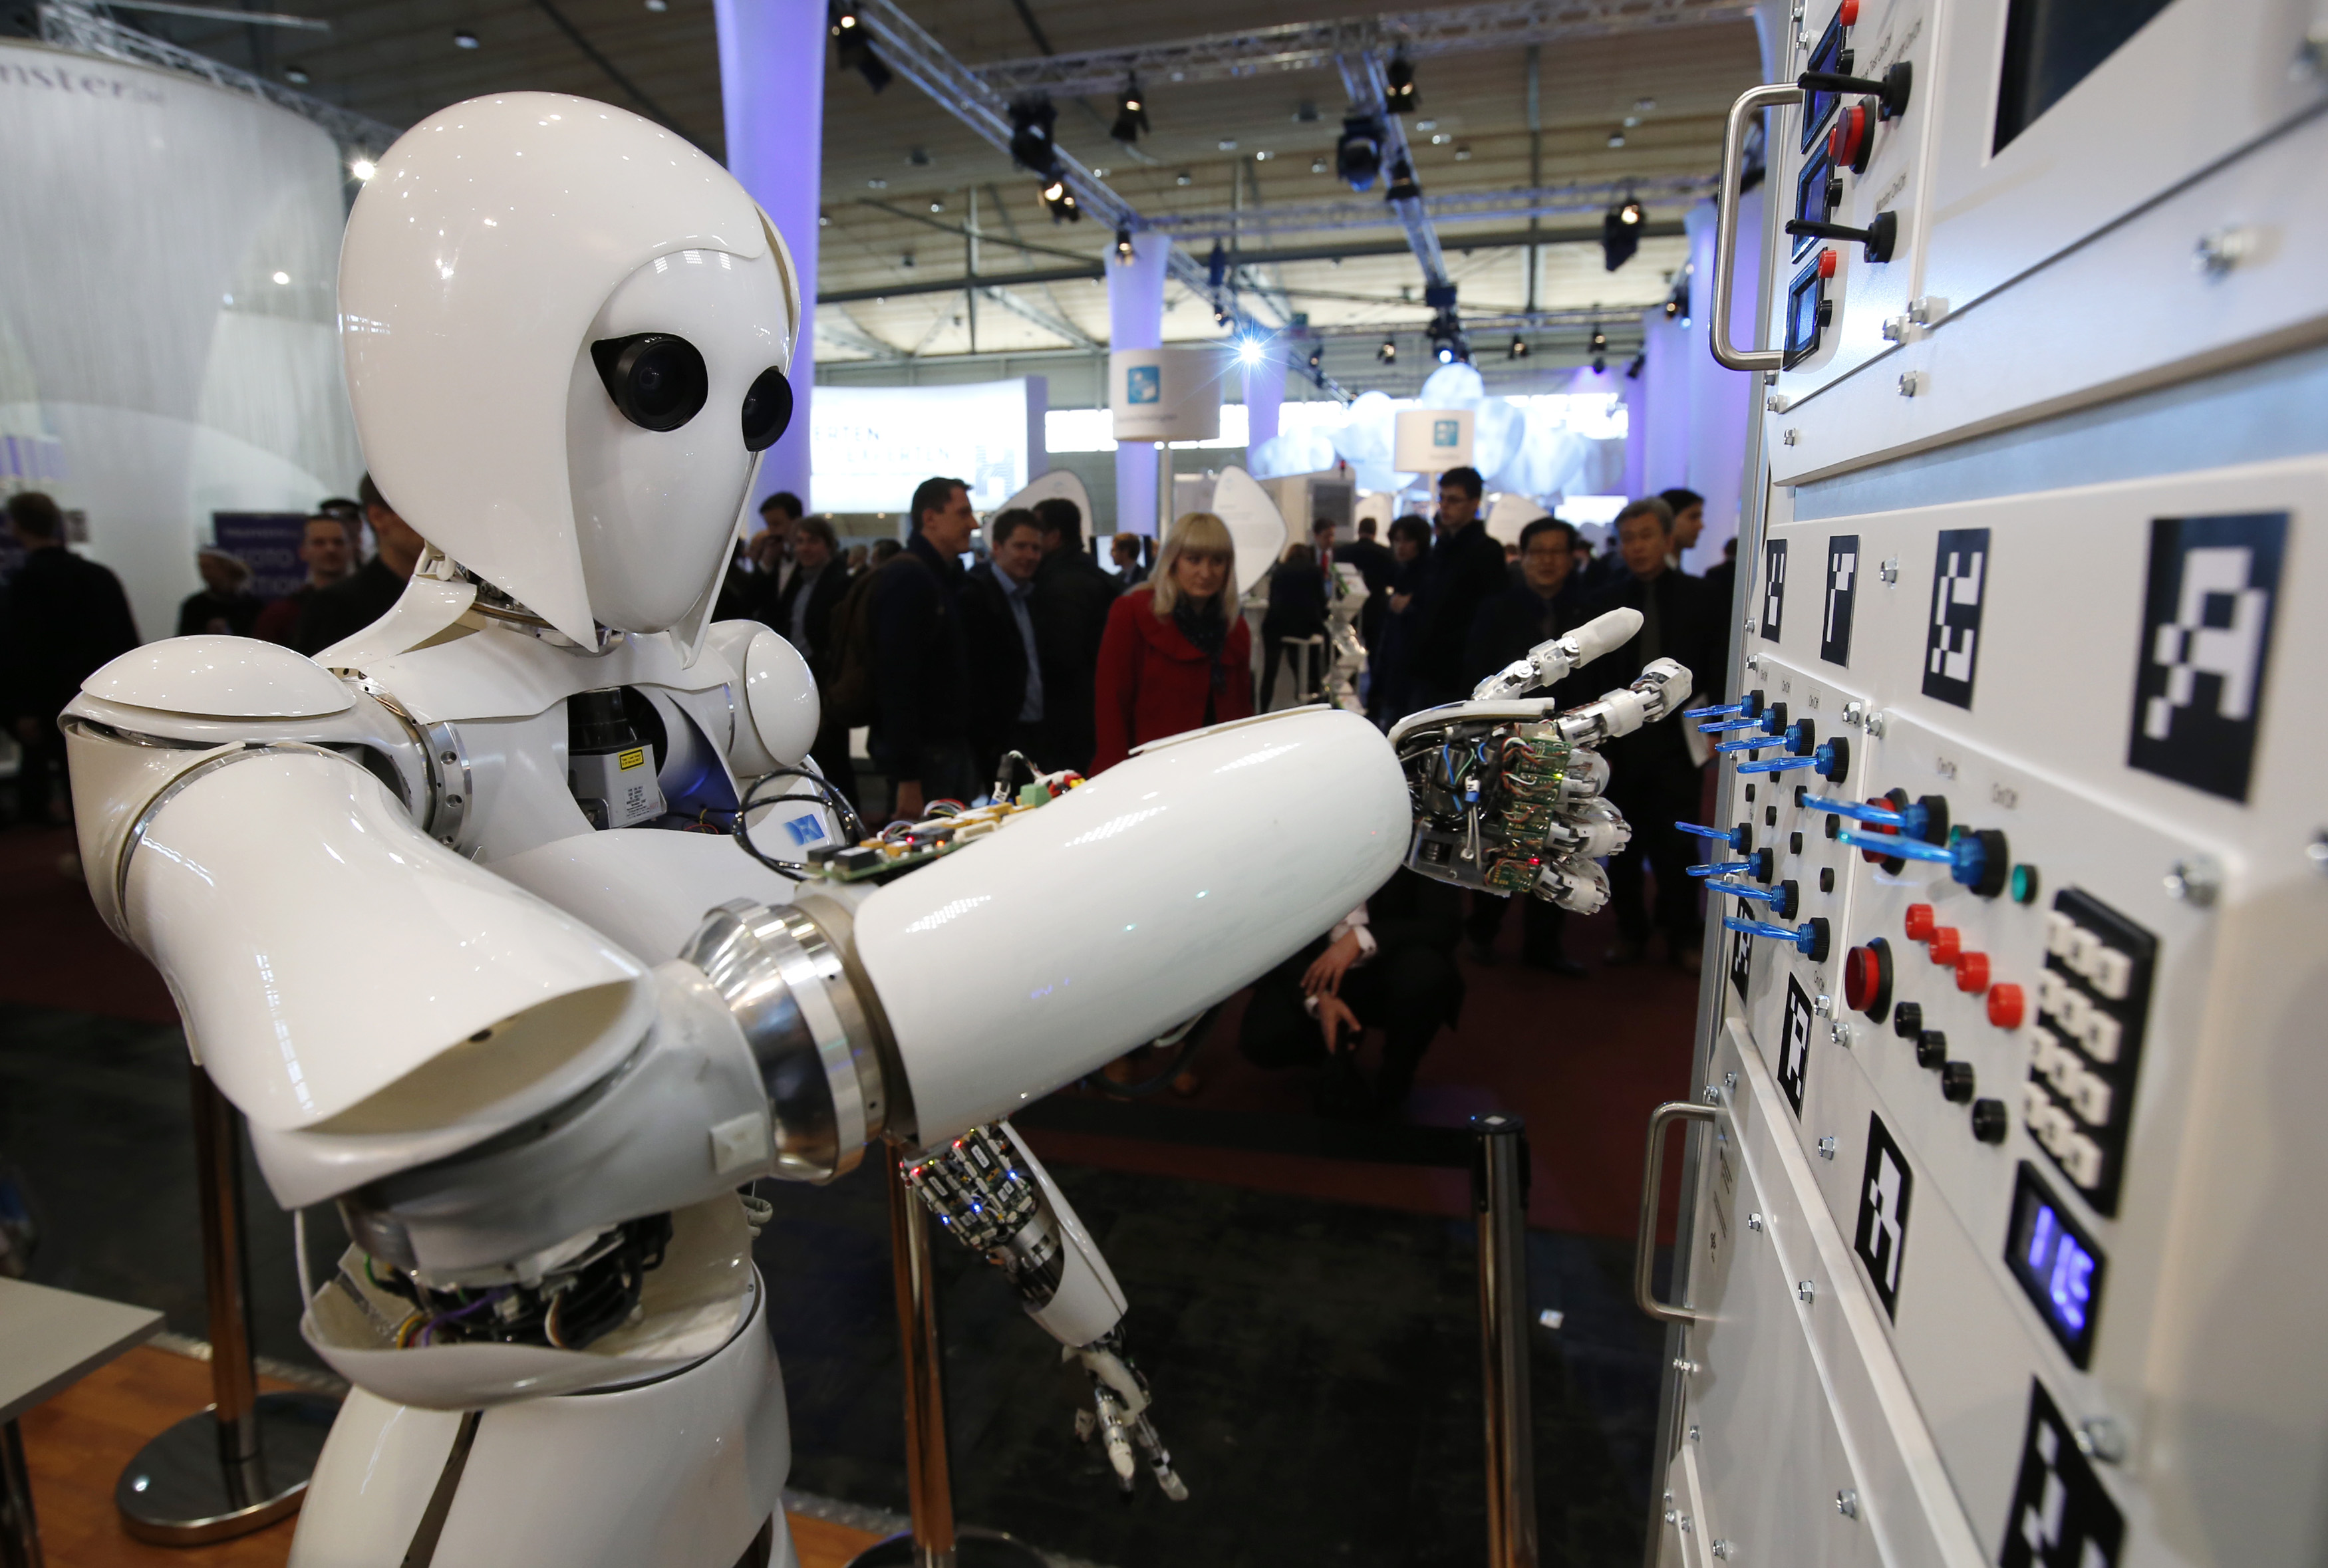 Rise of robotics will upend laws and lead to human job quotas, study says